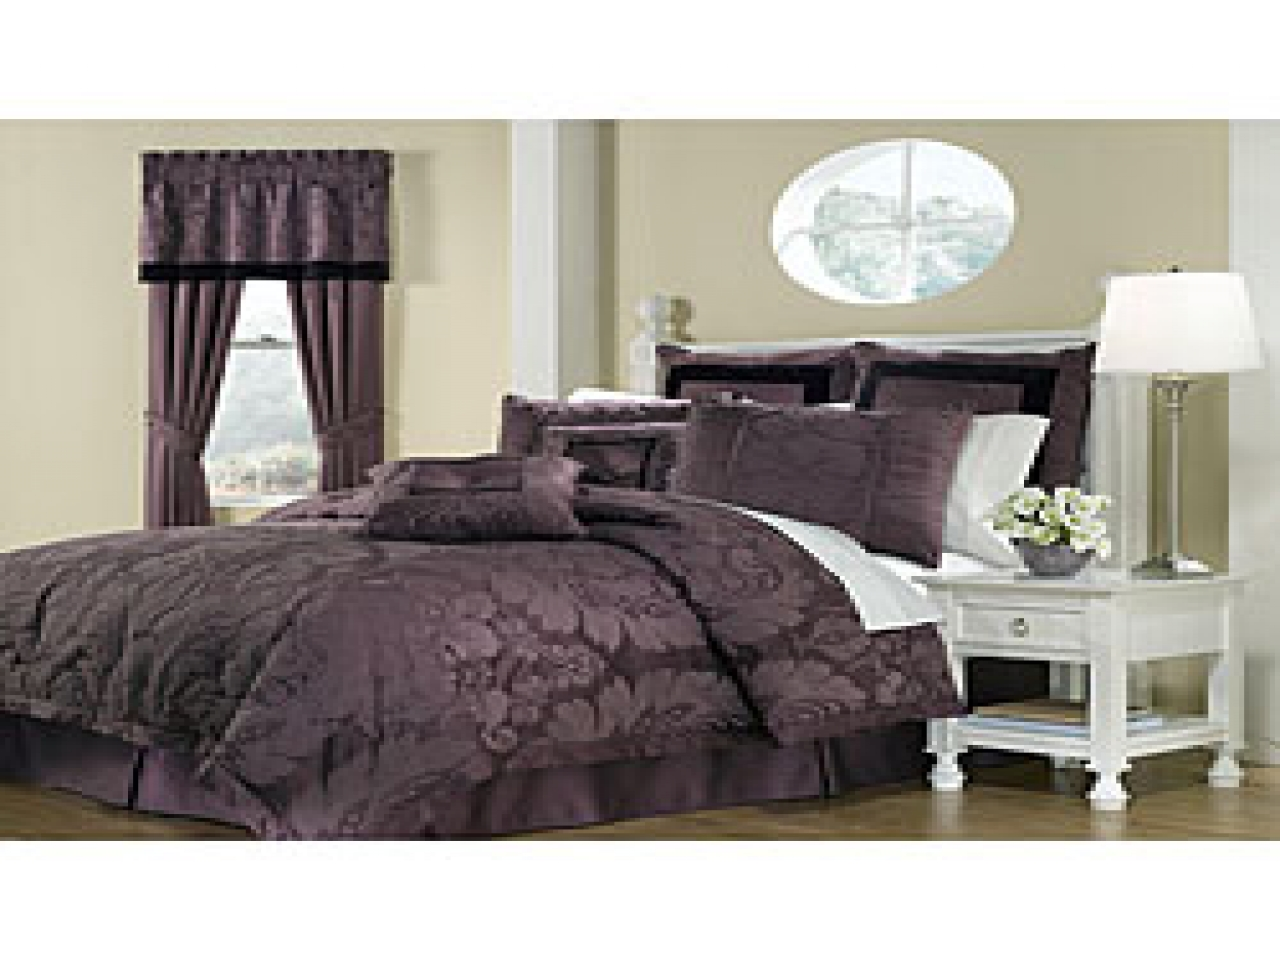 King Size Comforter Set | Queen Size Bedding Sets | Harley Davidson Bedding Sets Queen Size